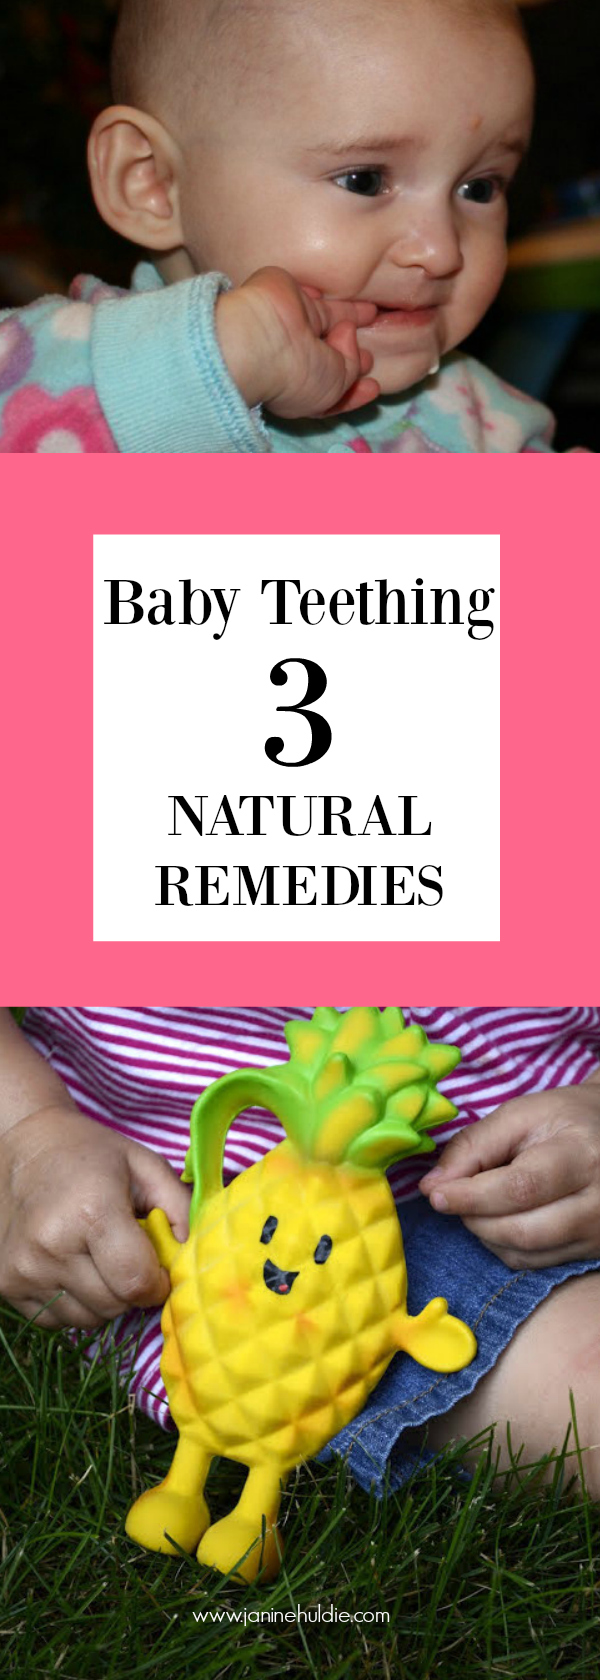 3 Perfect Natural Baby Teething Remedies Coam